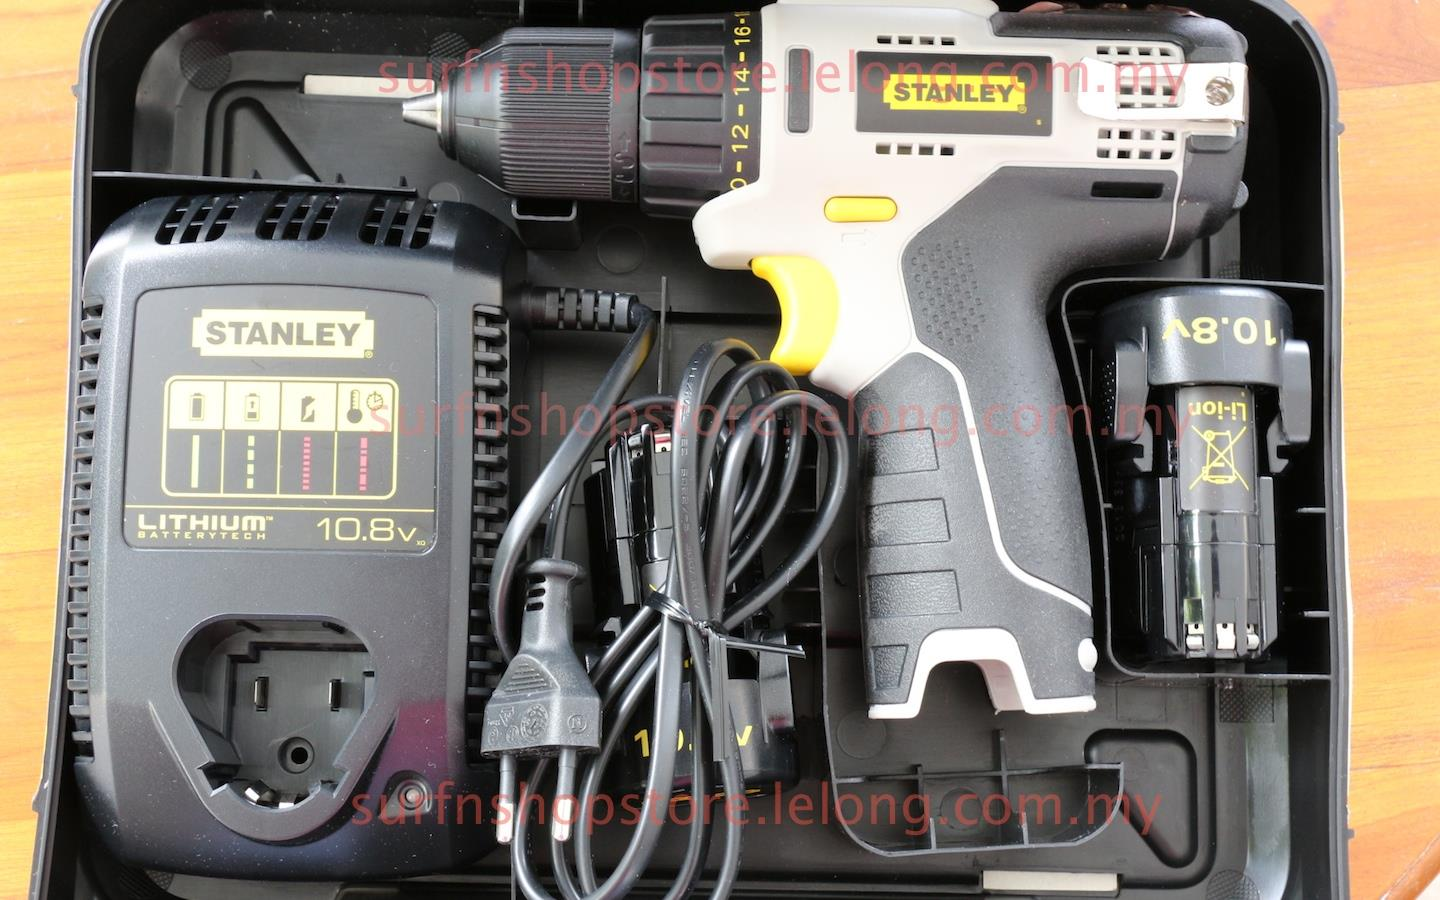 Stanley Fatmax 108v Li Ion Drill Drivers For Mac Download 18v Brushless Impact Driver Will